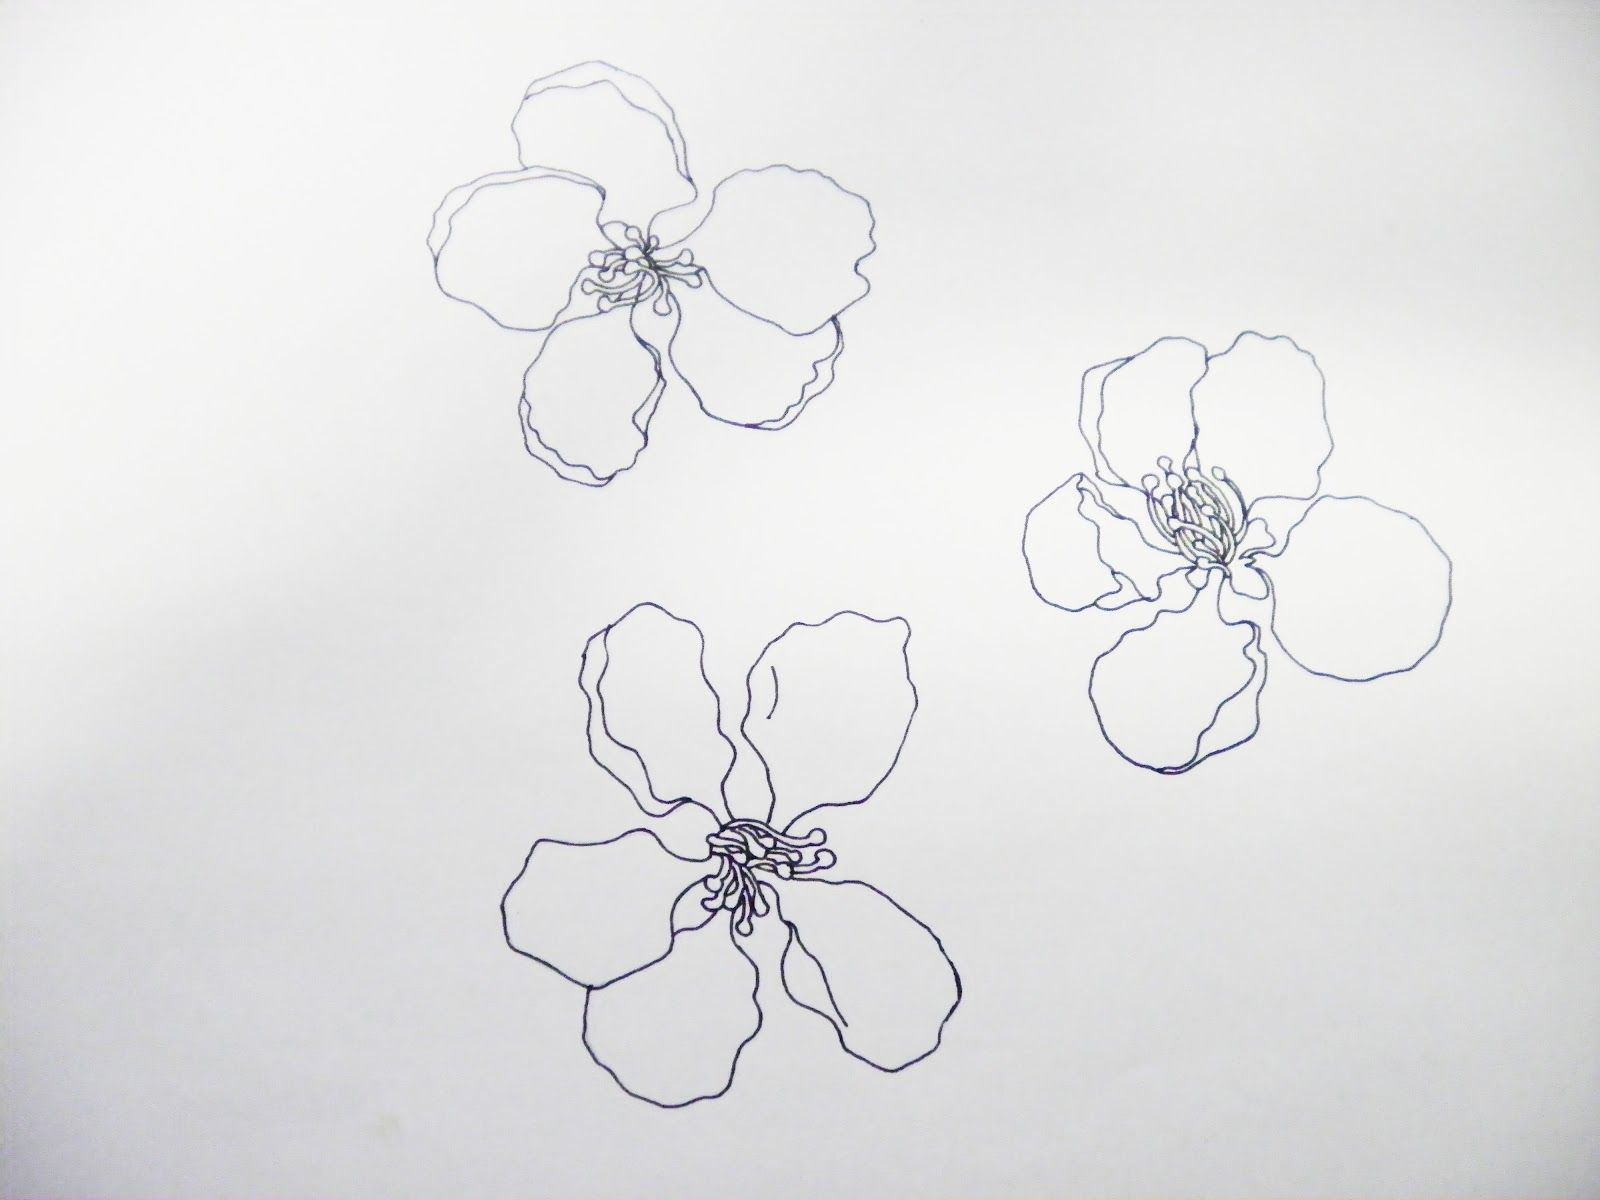 Line Art Flower Drawing : Line drawings of flowers google search lines letters doodles